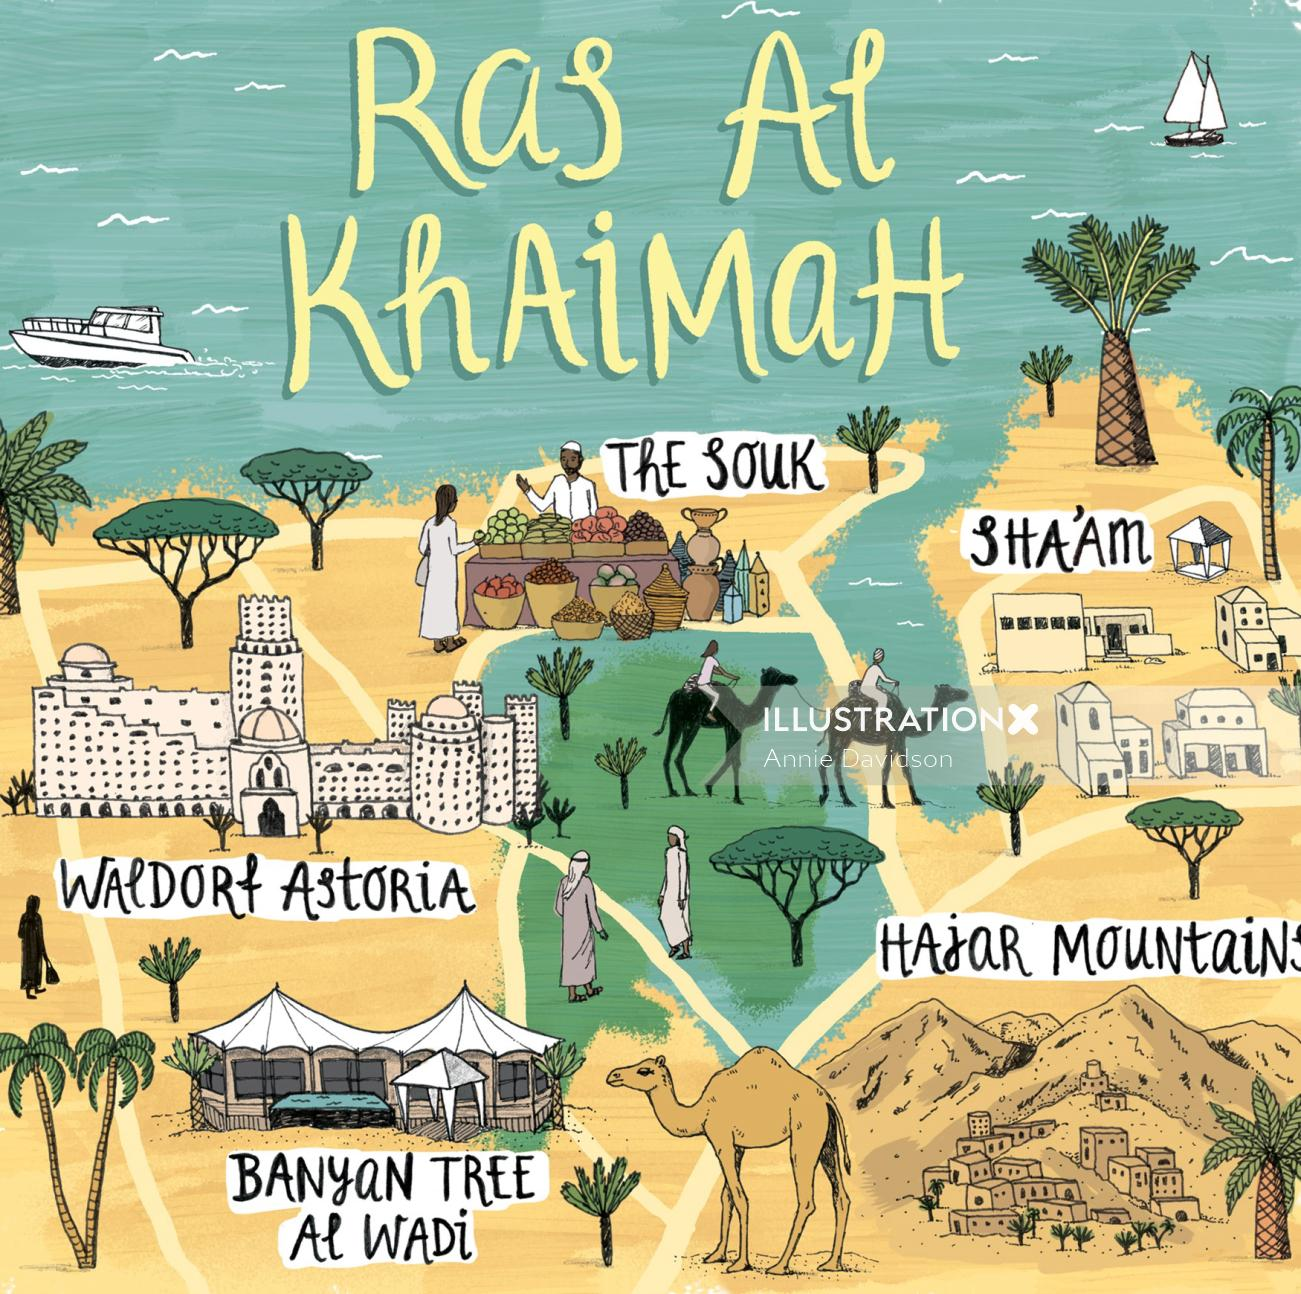 Map of Ras Al Khaimah for 'Jamie Oliver' Magazine